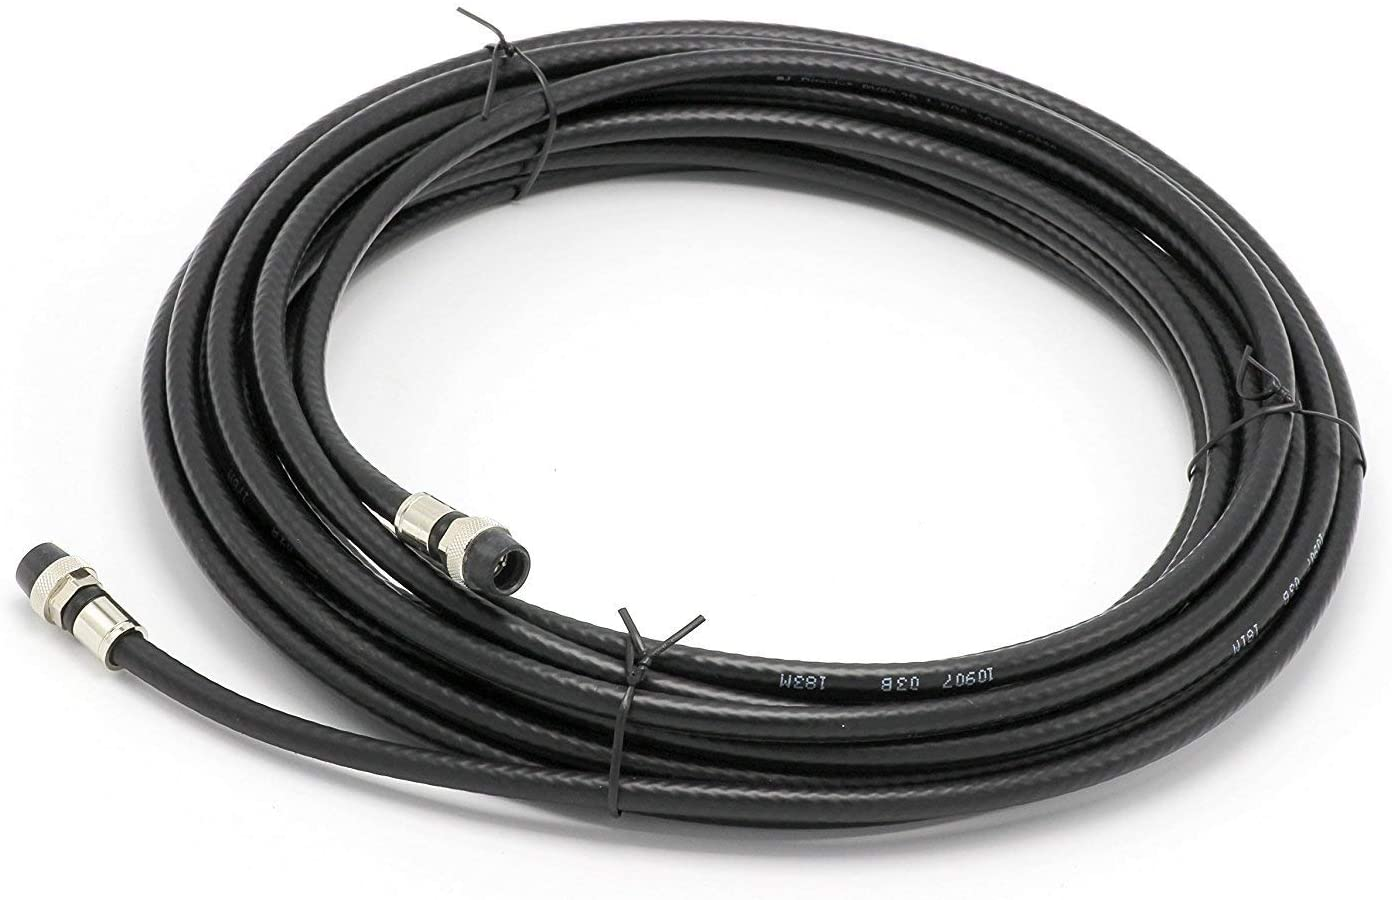 25' Feet Black RG6 Coaxial Cable Today's Max 51% OFF only Weather with P - booted Rubber